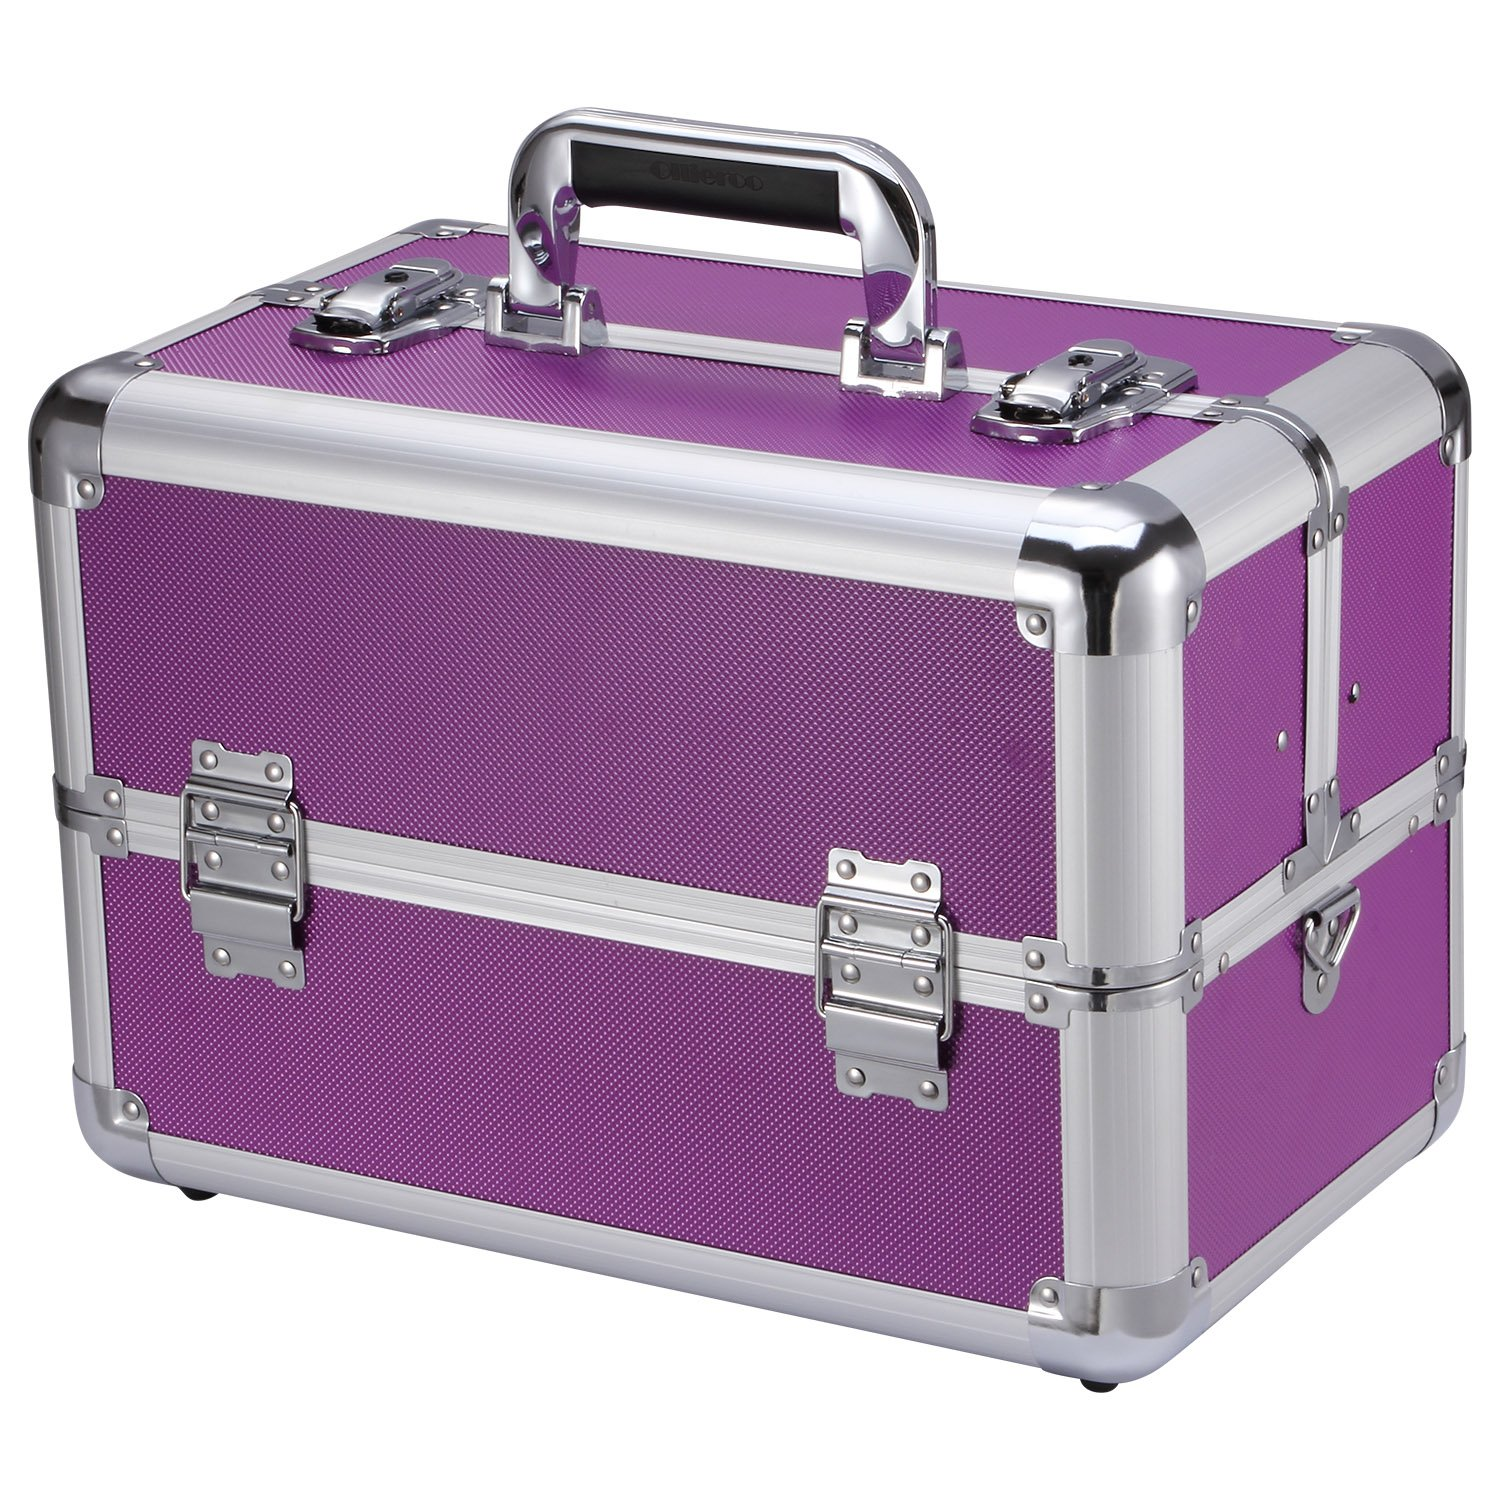 Ollieroo Makeup Train Case Professional 14'' Large Make Up Artist Organizer Kit Shoulder Bag with Adjustable Dividers Key Lock Cosmetic Studio Box Designed to Fit All Cosmetics Purple